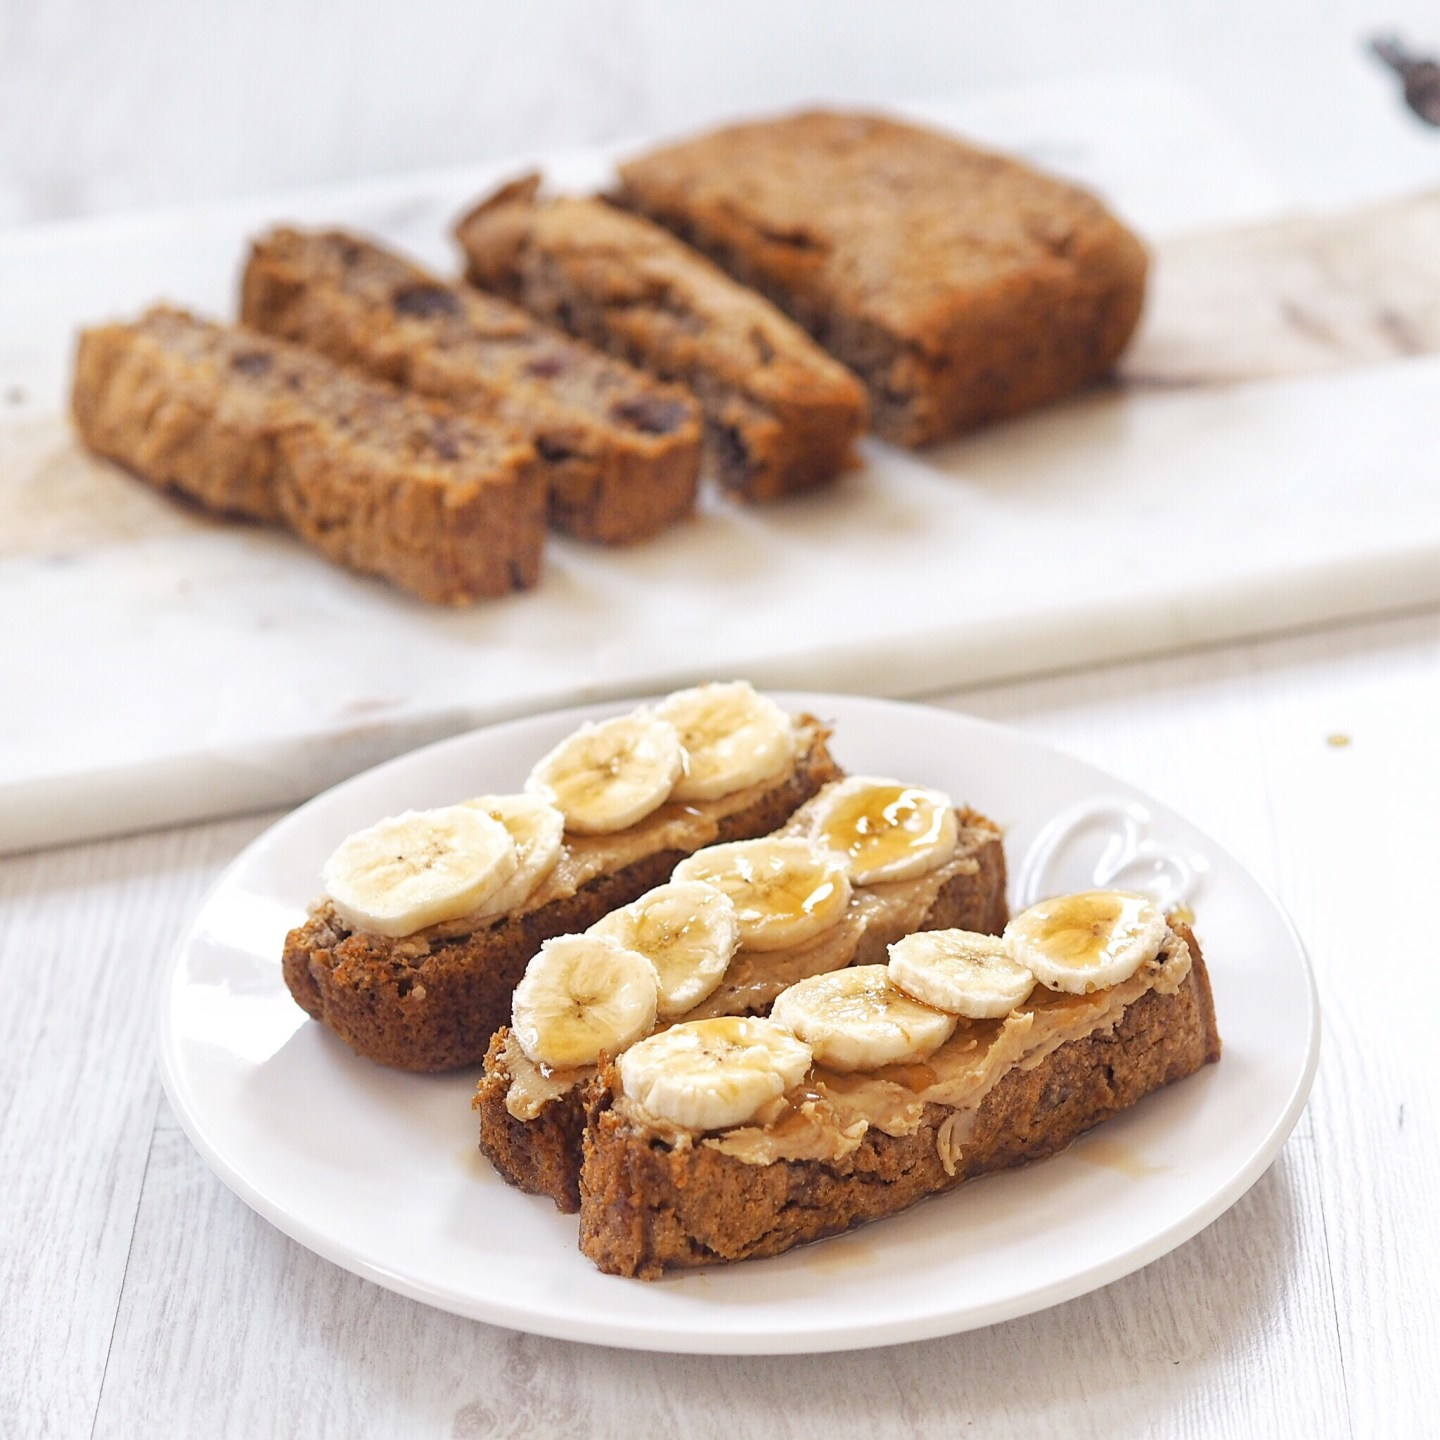 Date and Walnut Vegan Banana Bread